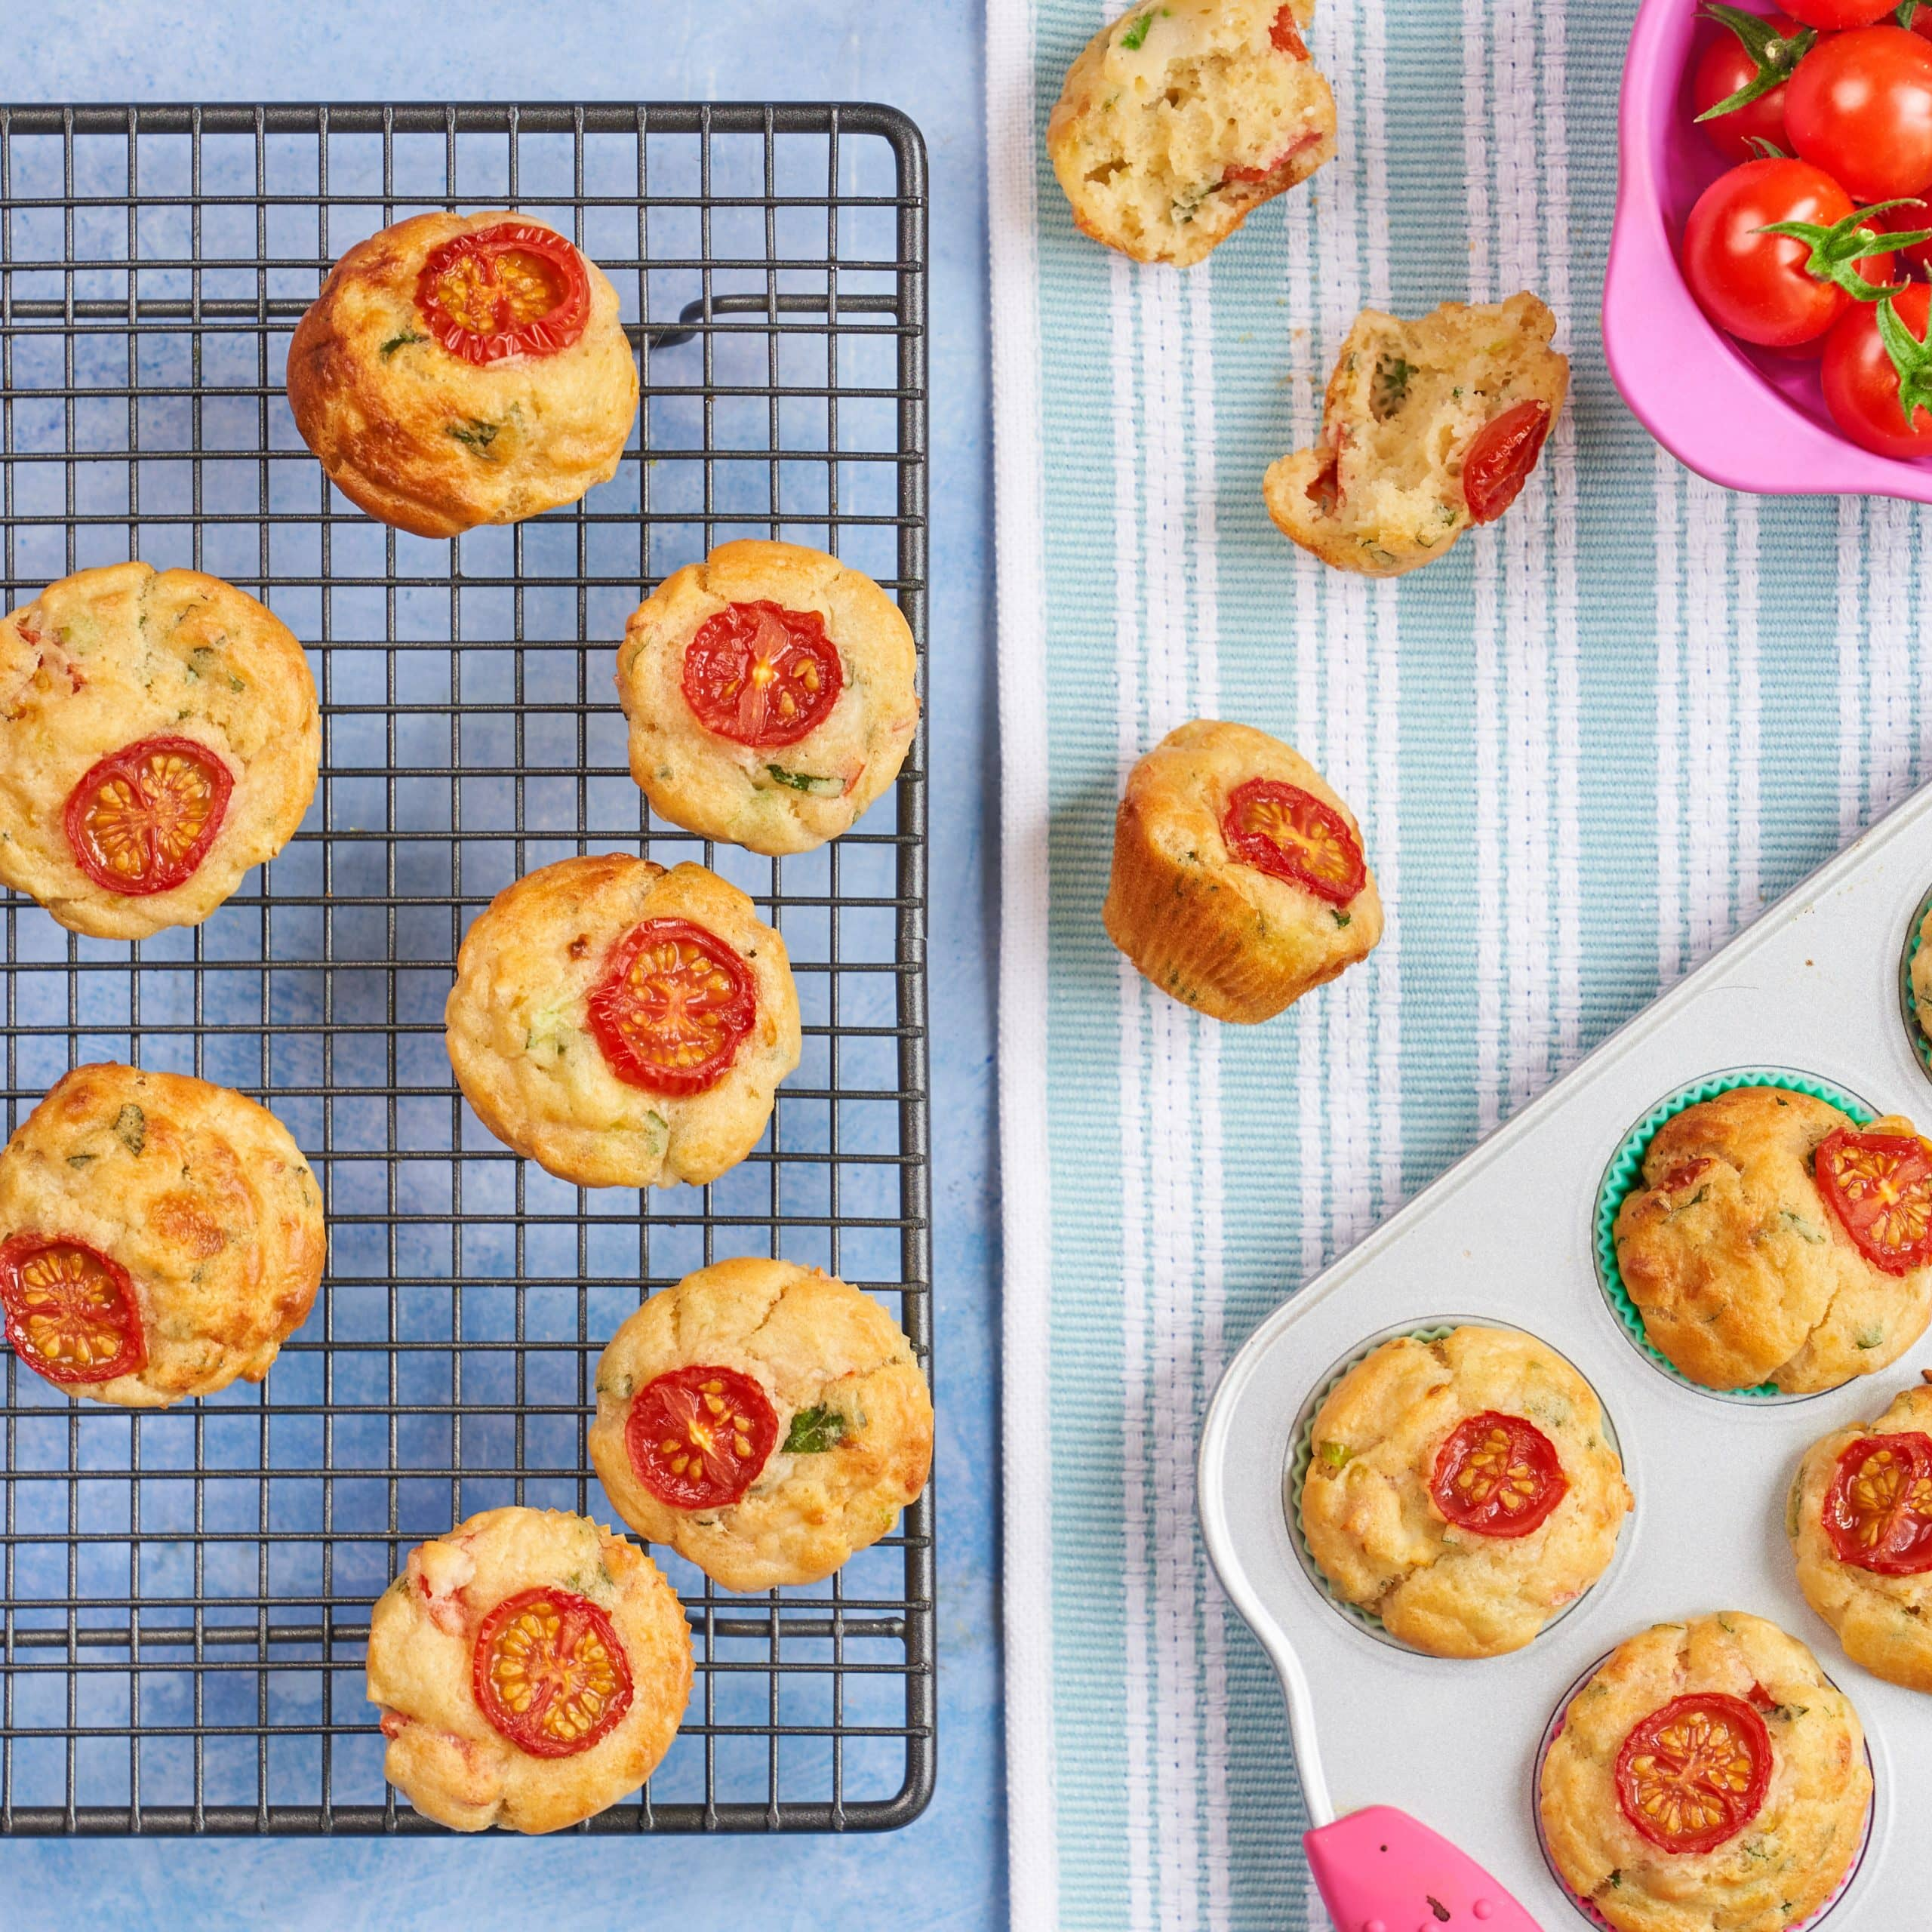 Mini Cheese & Cherry Tomato Muffins recipe by Annabel Karmel